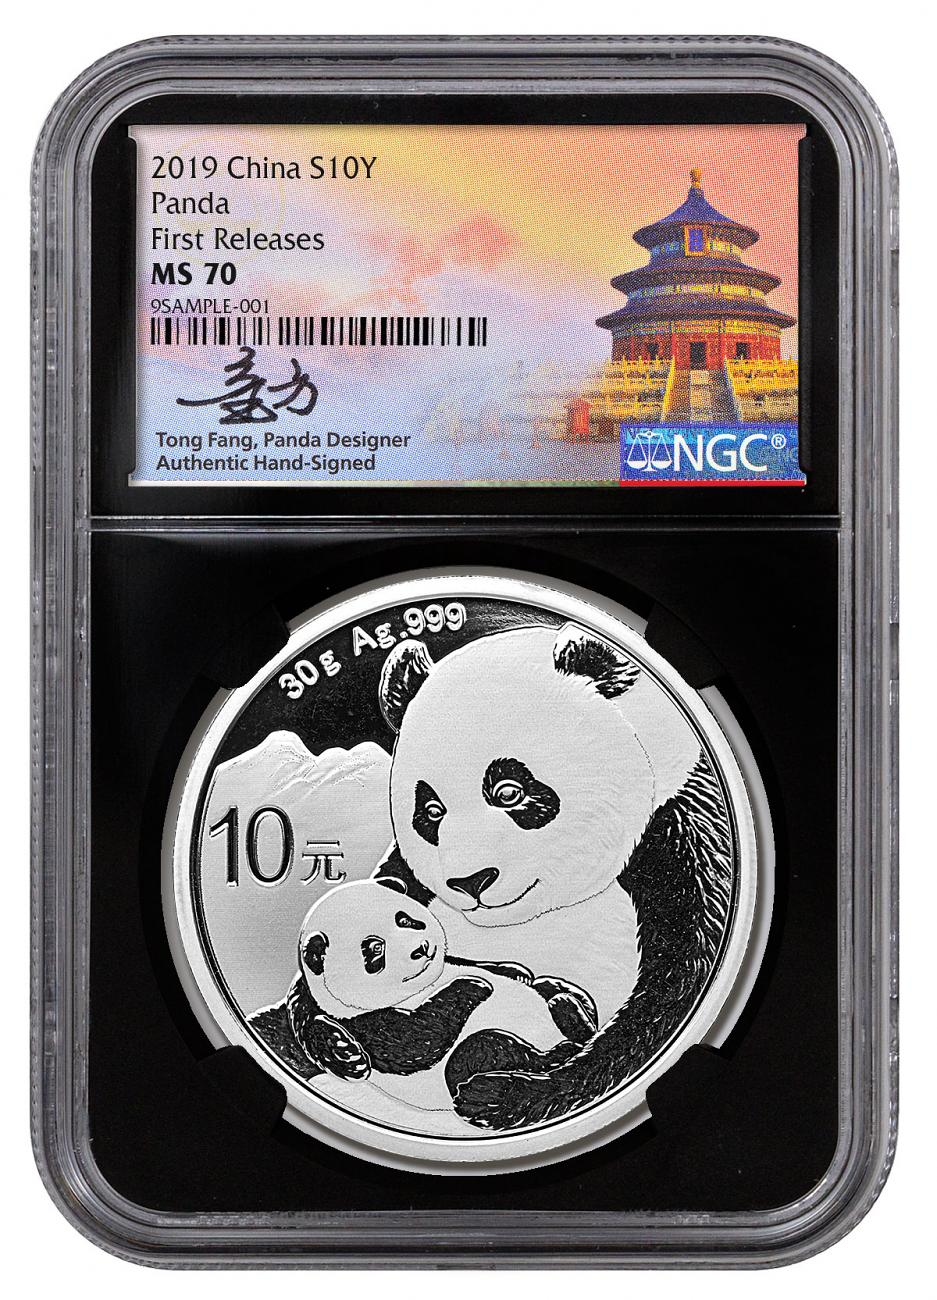 2019 China 30 g Silver Panda ¥10 Coin NGC MS70 FR Black Core Holder Tong Fang Signed Label